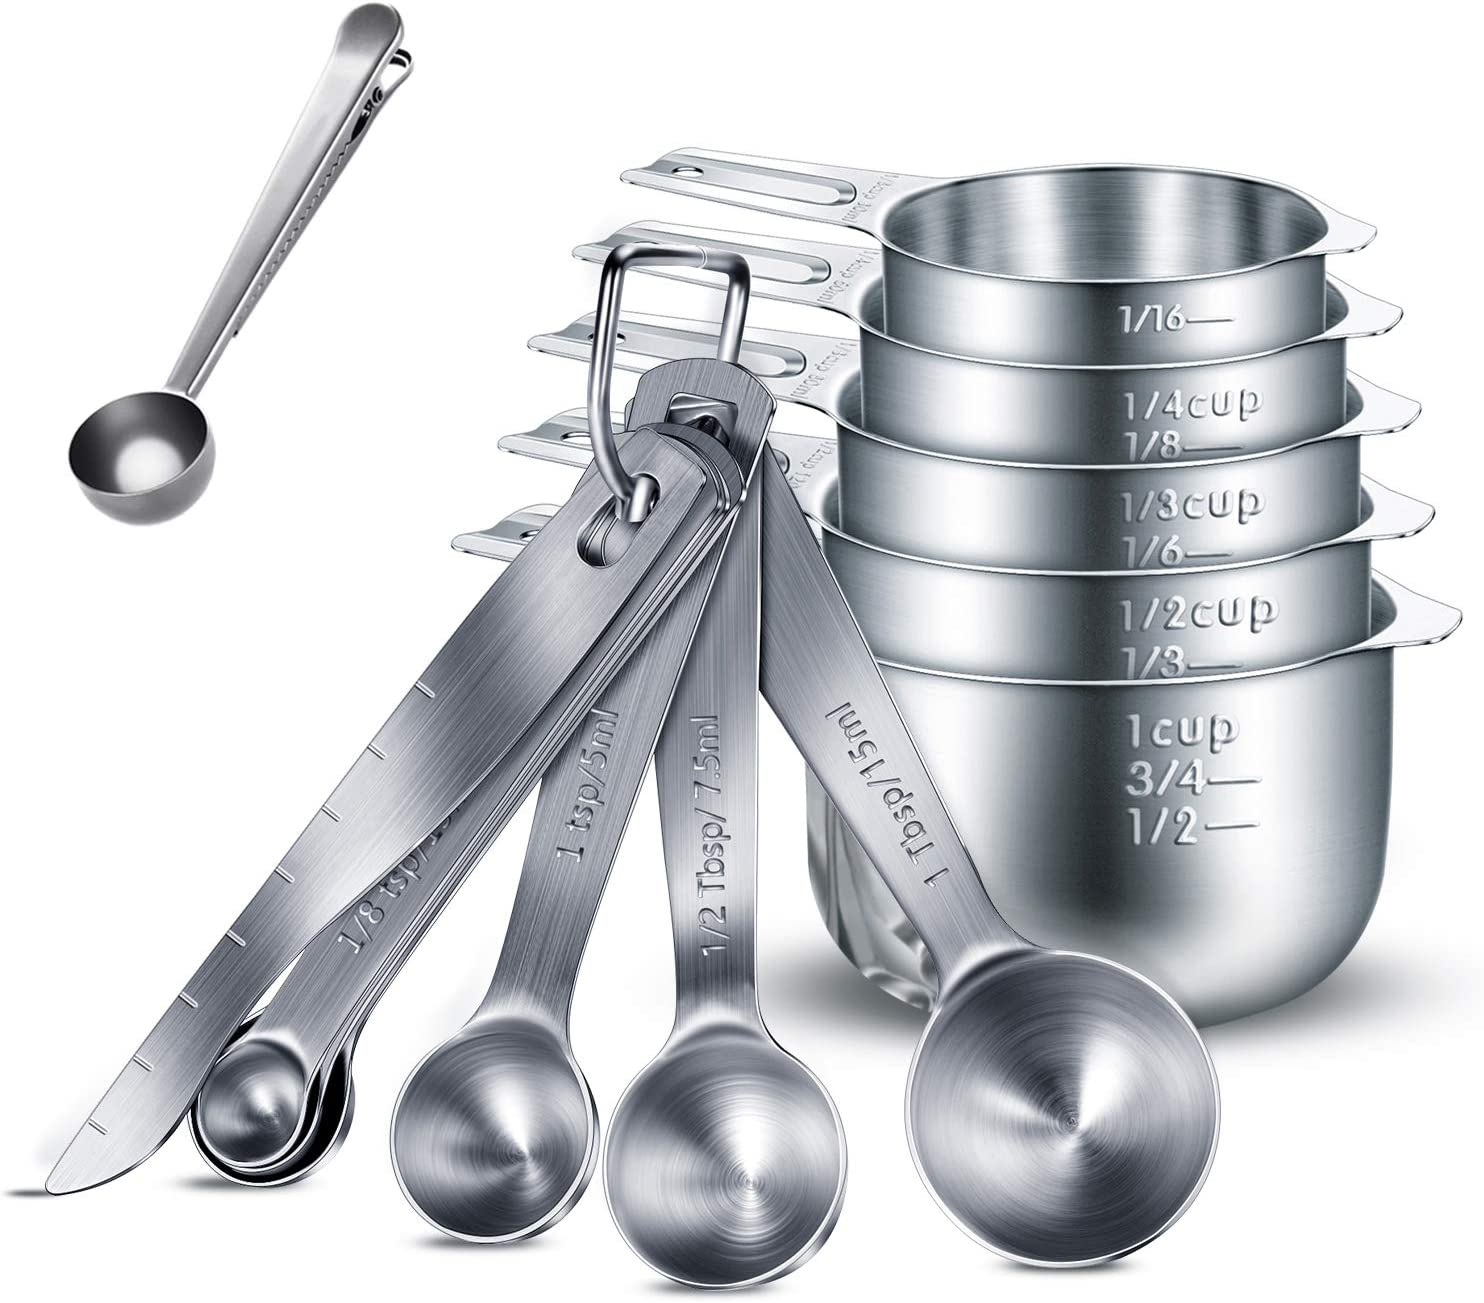 Stackable Stainless Steel 13 Piece Measuring Cups and Spoons Set US /& Metric